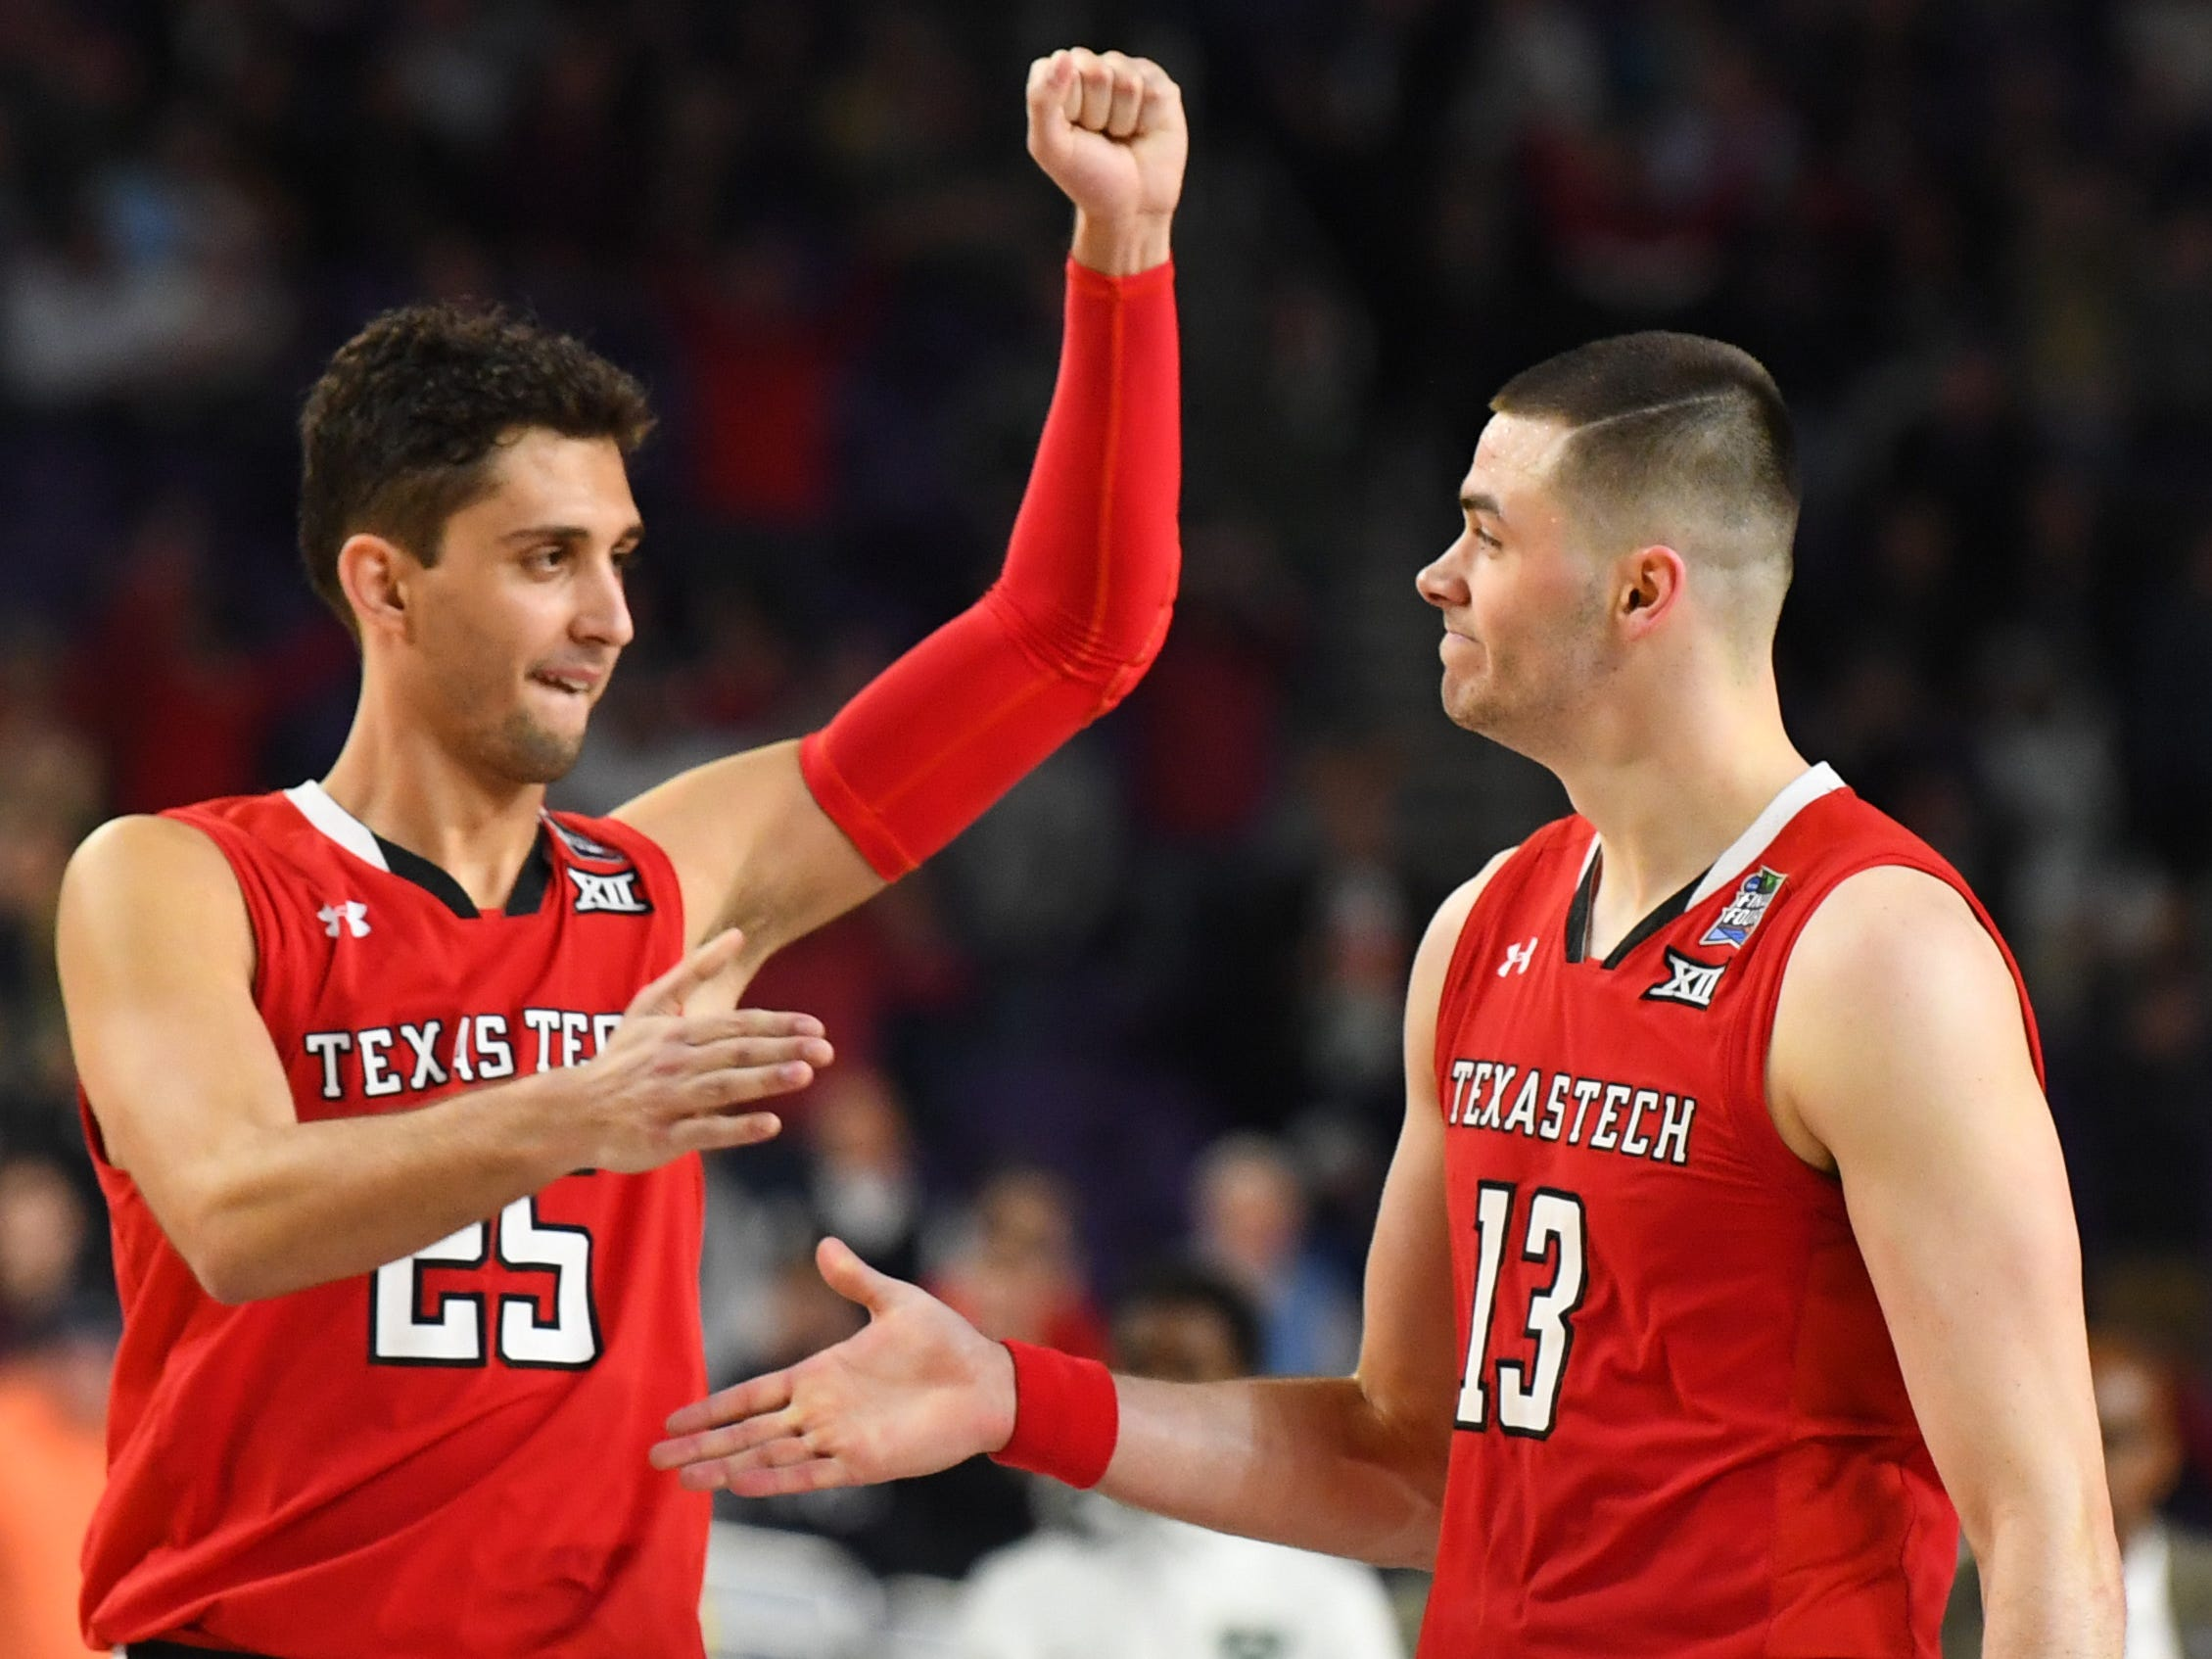 Apr 6, 2019; Minneapolis, MN, USA; Texas Tech Red Raiders guard Matt Mooney (13) and  guard Davide Moretti (25) celebrate their win over the Michigan State Spartans in the semifinals of the 2019 men's Final Four at US Bank Stadium. Mandatory Credit: Robert Deutsch-USA TODAY Sports